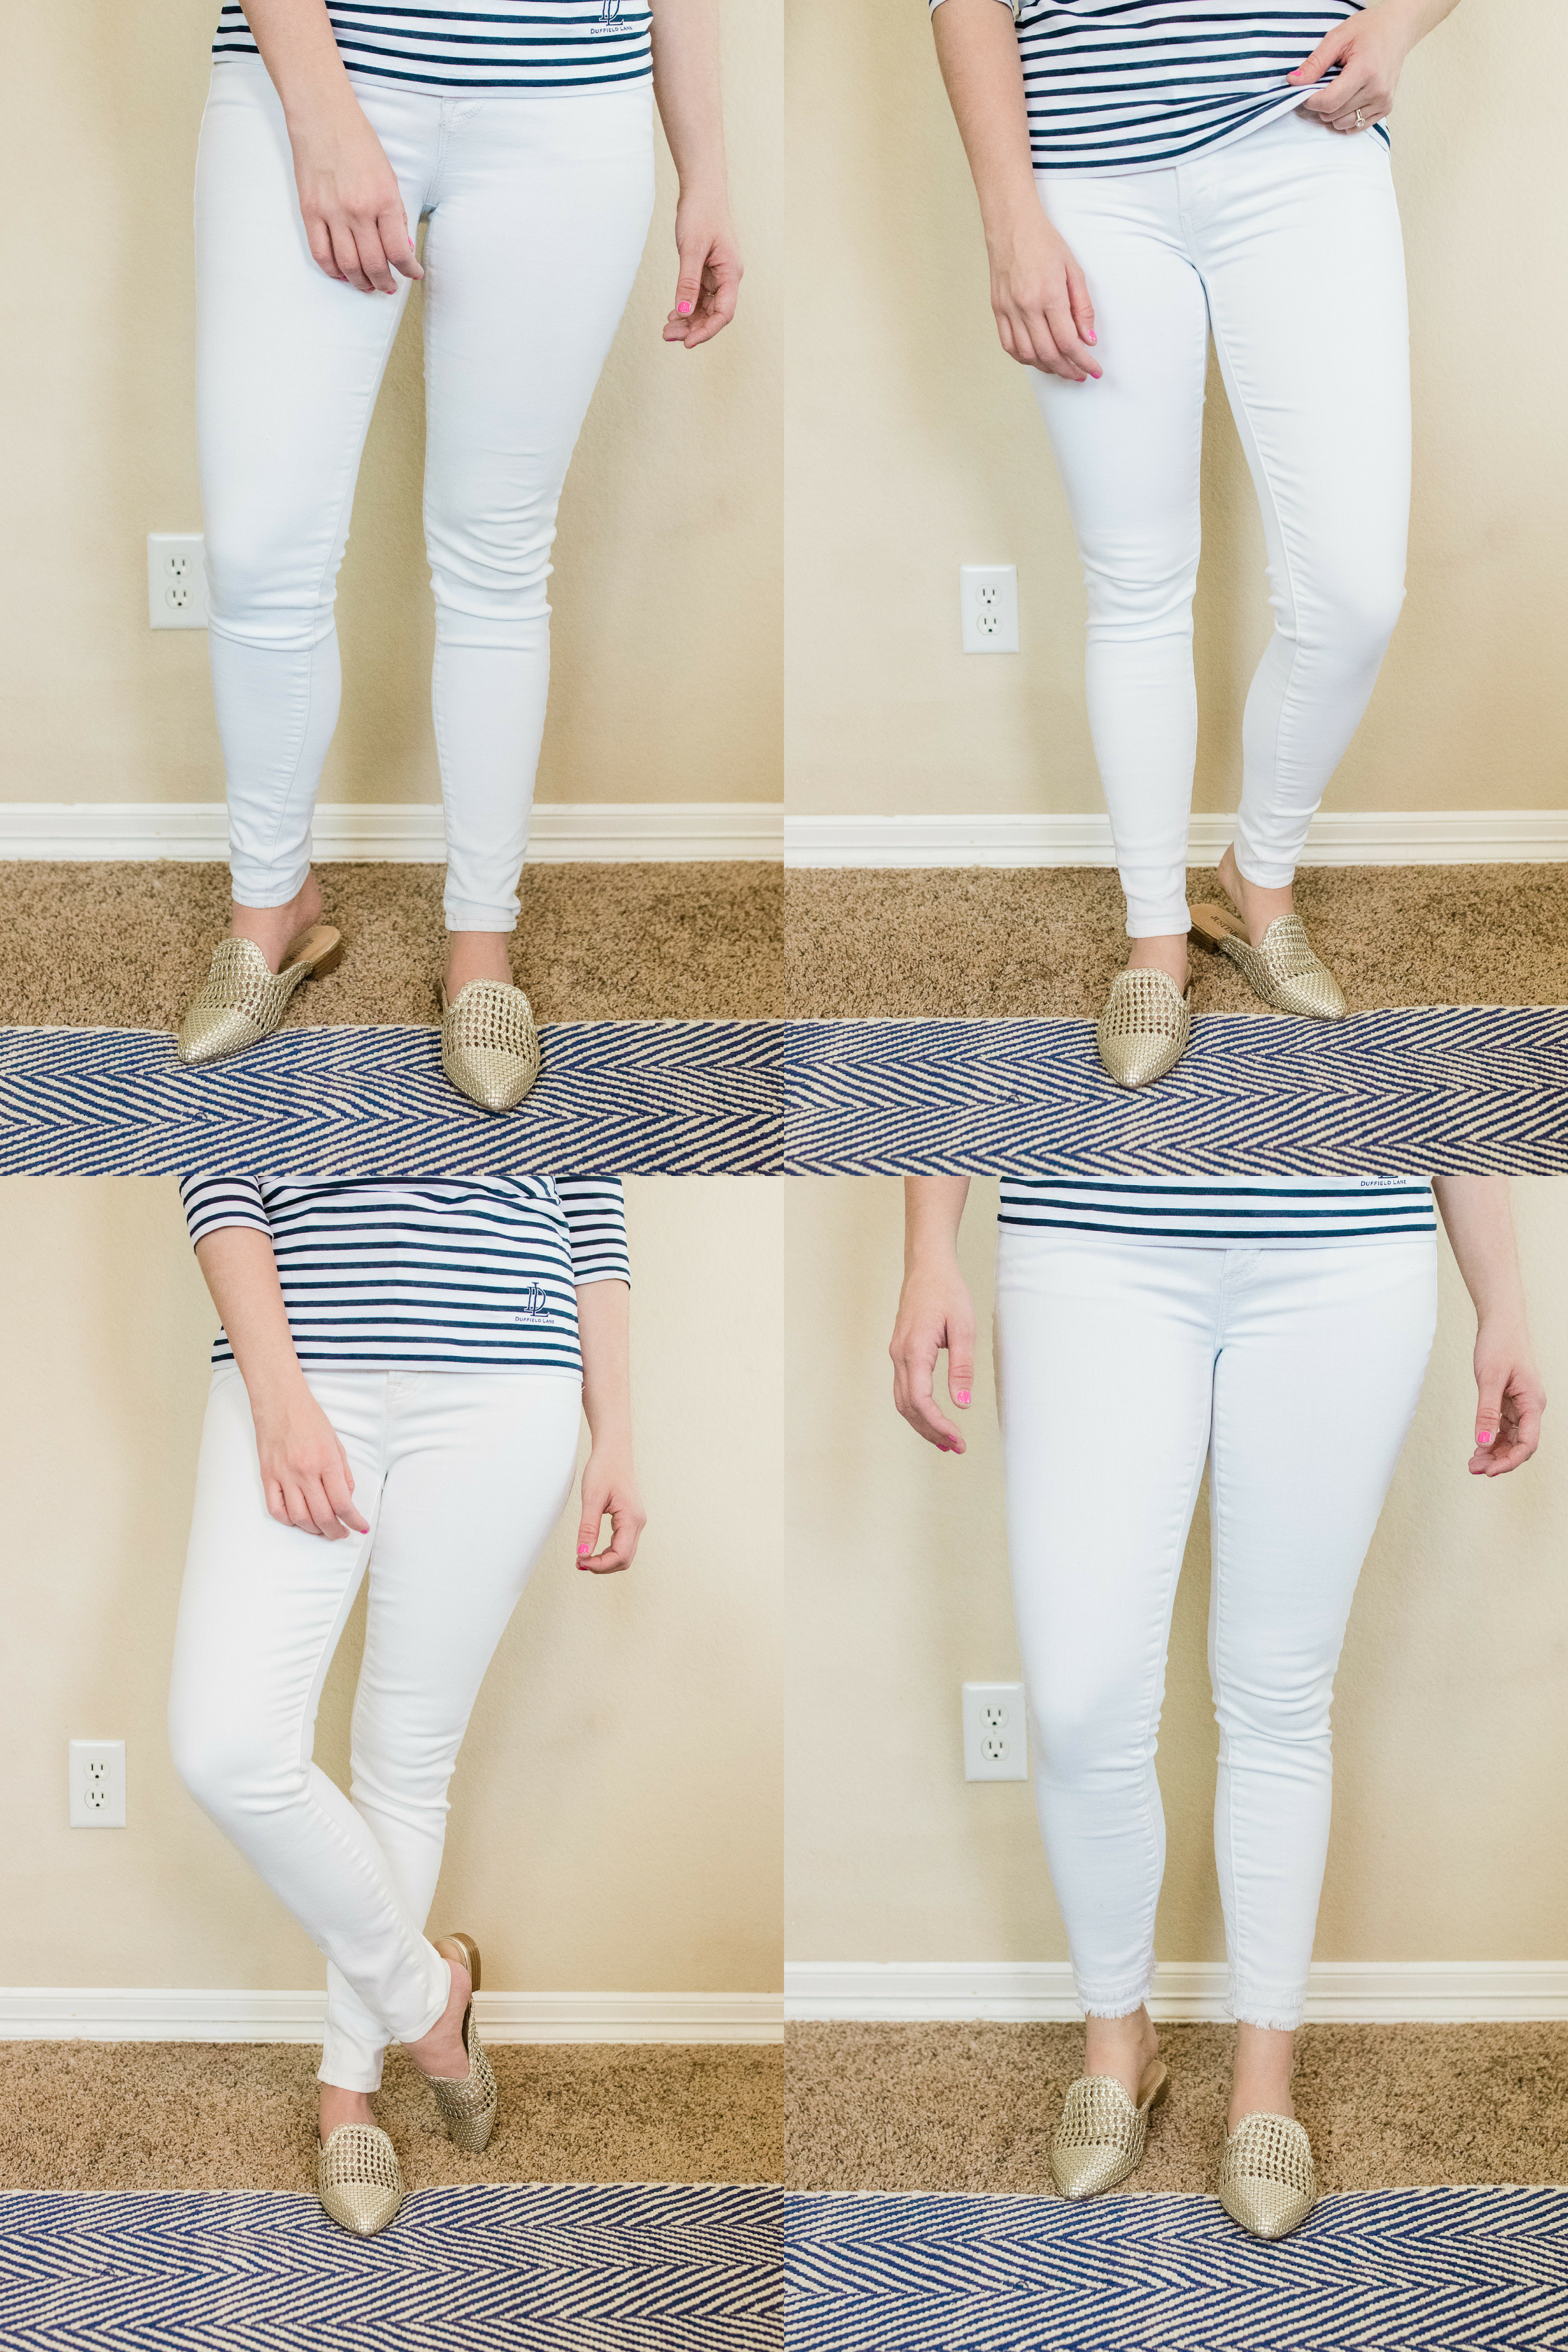 9b8df0e9b8100 It s time for the ultimate white jeans showdown! One of the hardest things  for me to shop for is white jeans at an affordable price